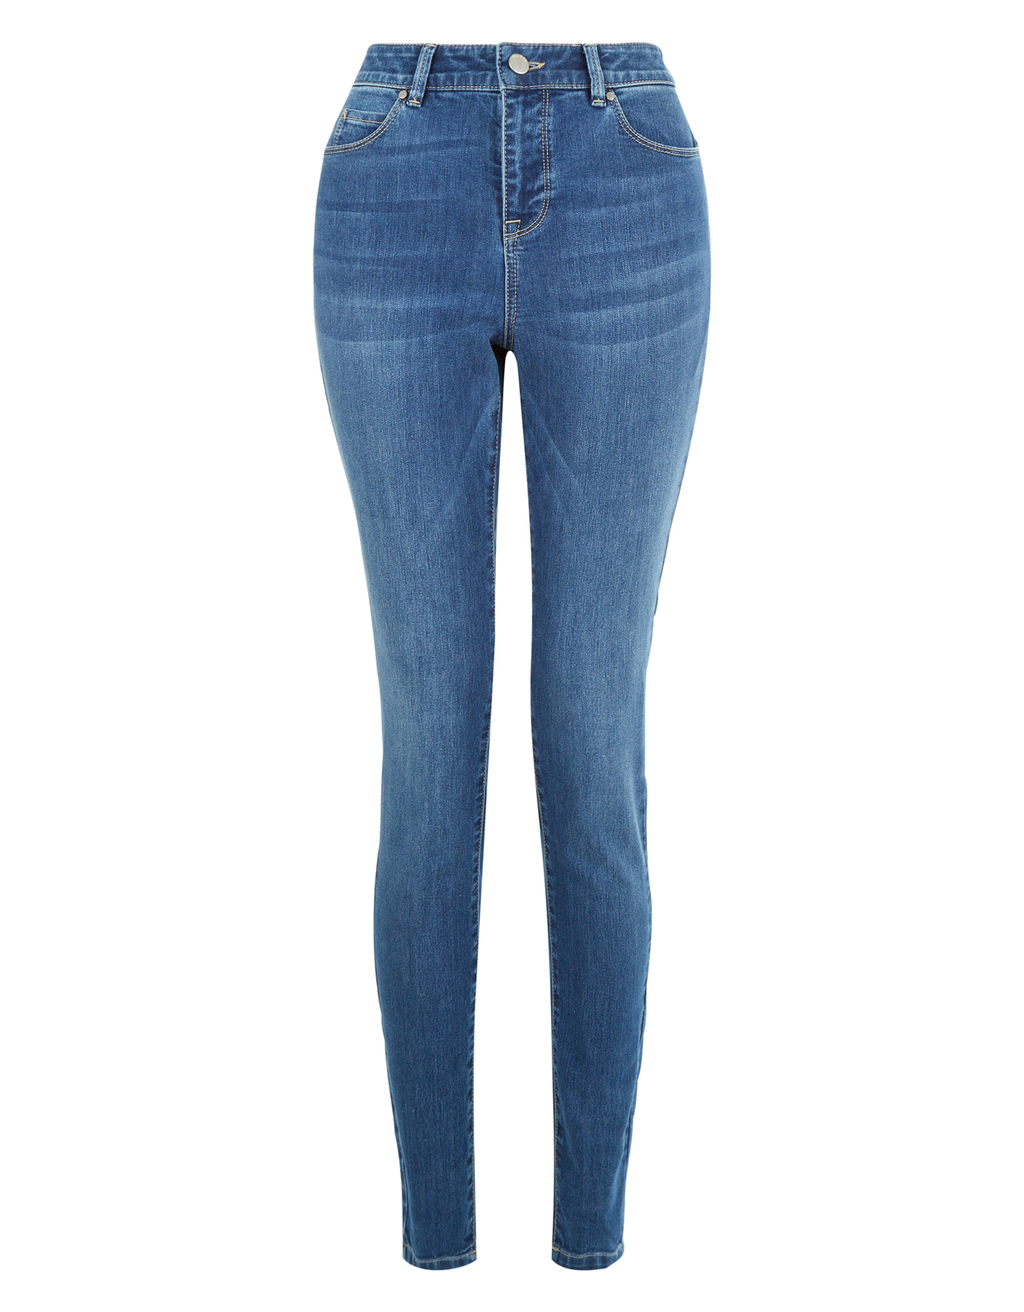 Iris Light Wash Skinny Jean - style: skinny leg; length: standard; pattern: plain; waist: high rise; predominant colour: denim; occasions: casual, creative work; fibres: cotton - stretch; jeans detail: whiskering; texture group: denim; pattern type: fabric; season: s/s 2016